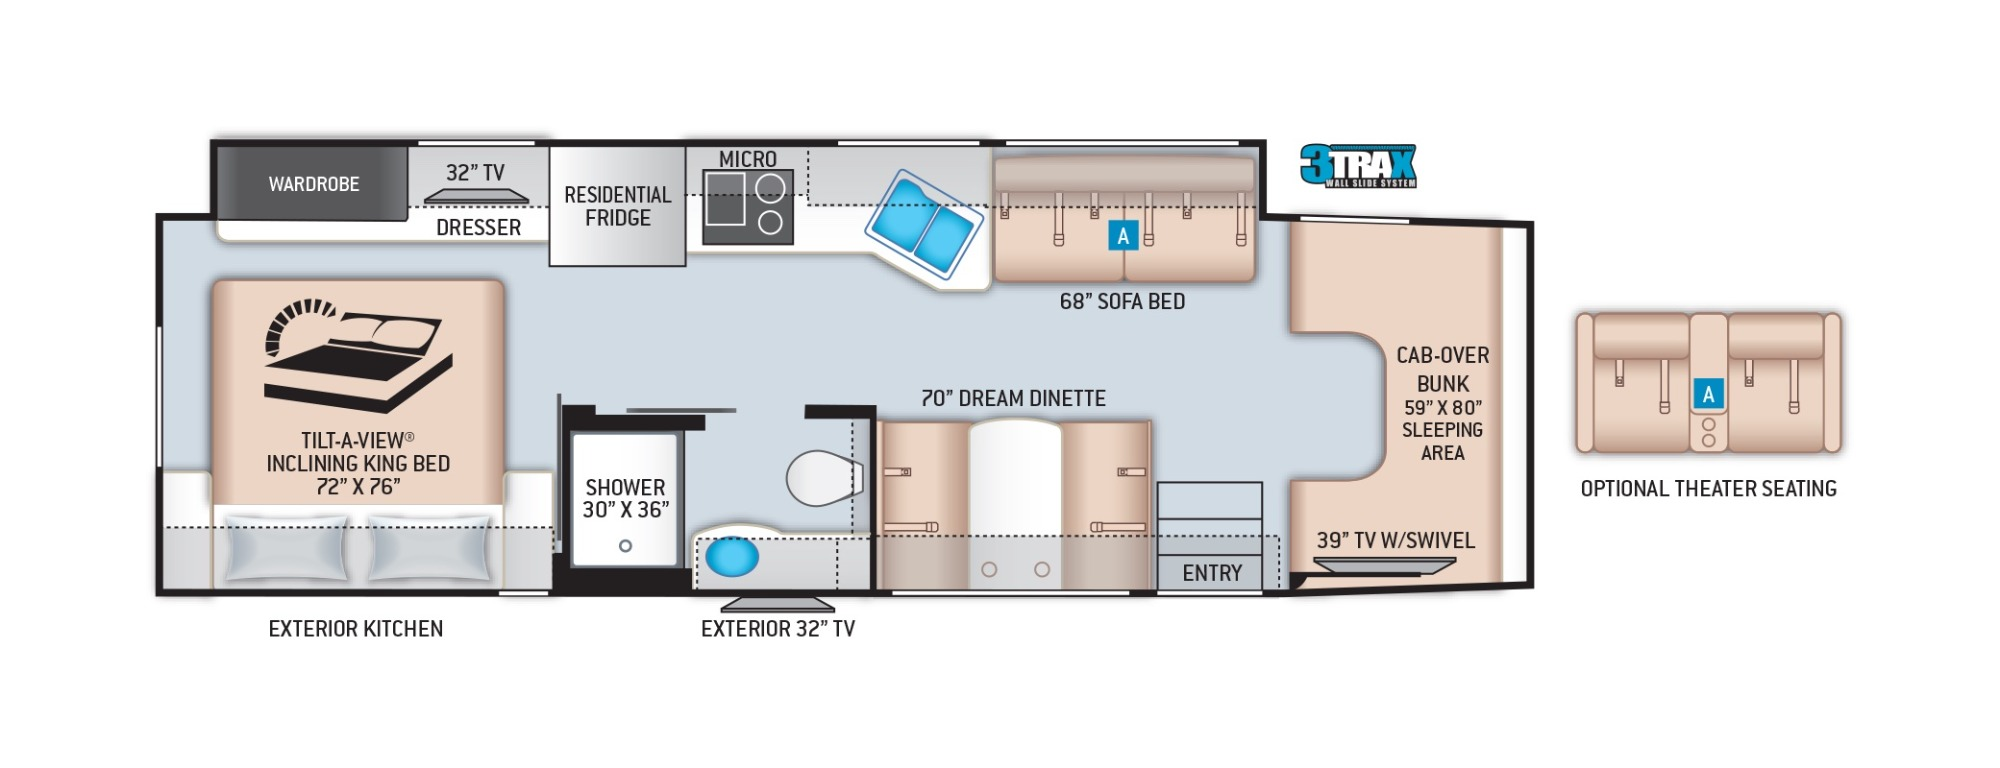 View Floor Plan for 2022 THOR OMNI SV34